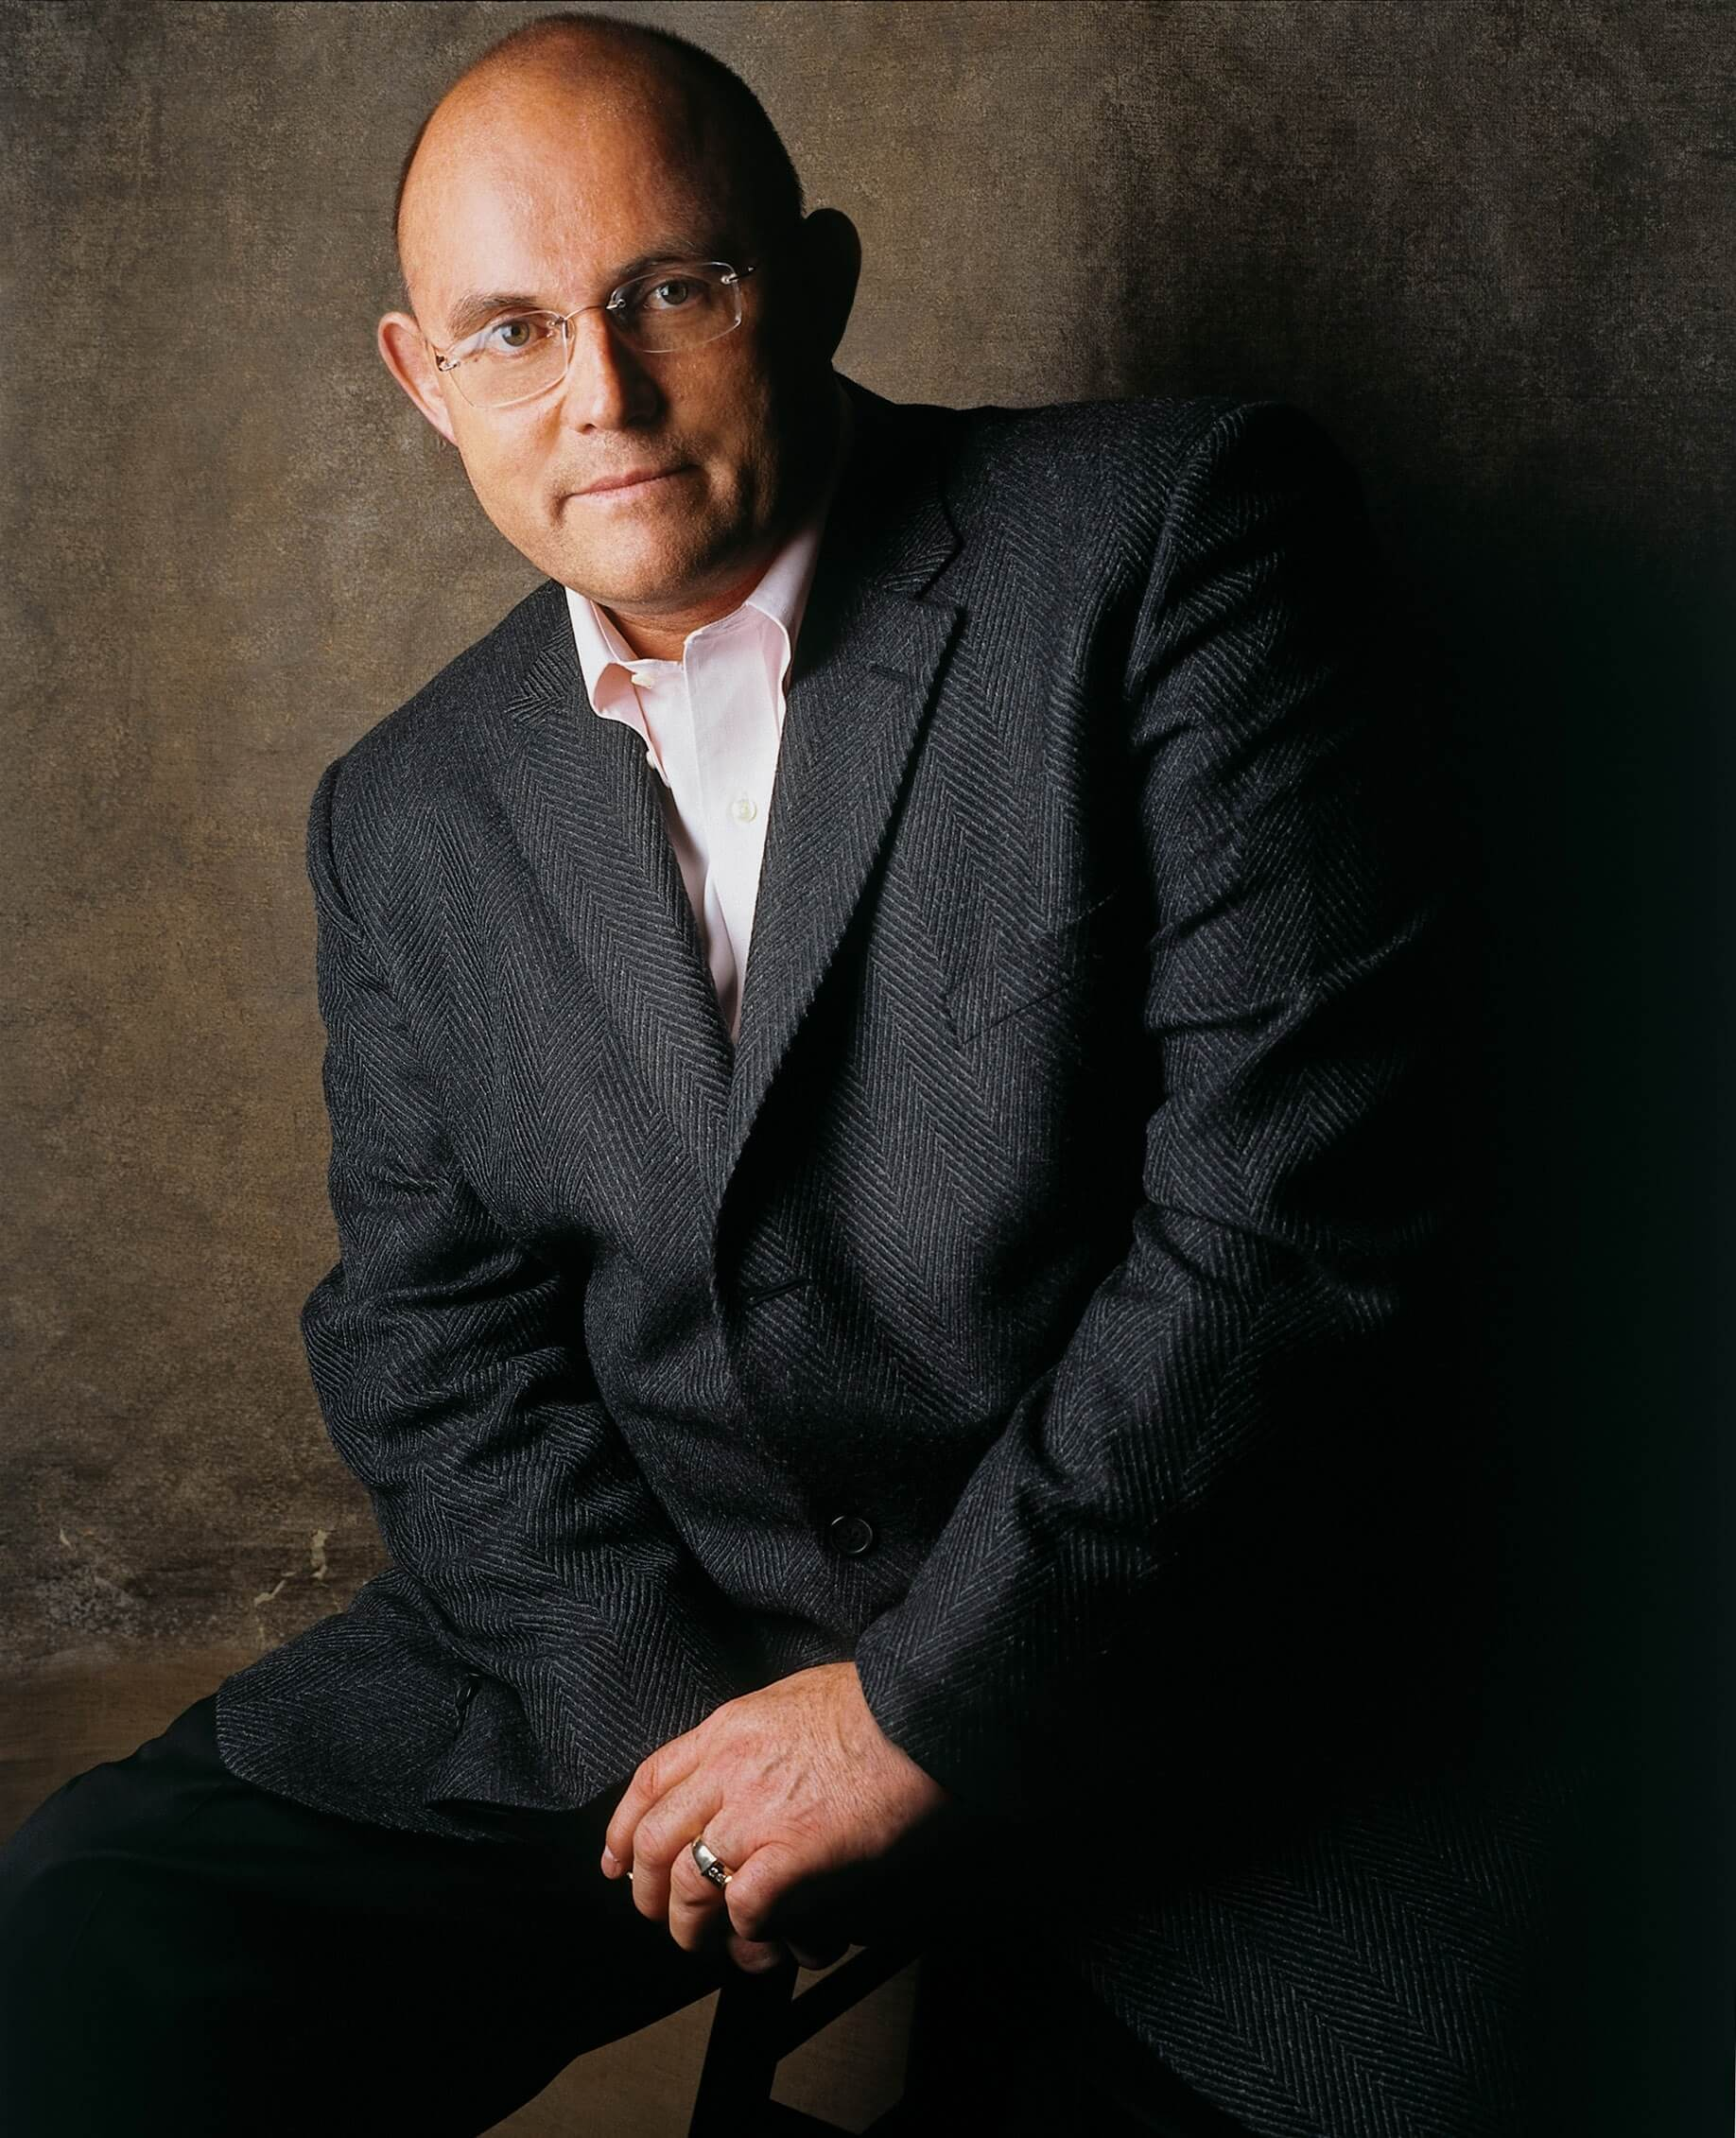 RONAN TYNAN Returns to The Patchogue Theatre for the Performing Arts